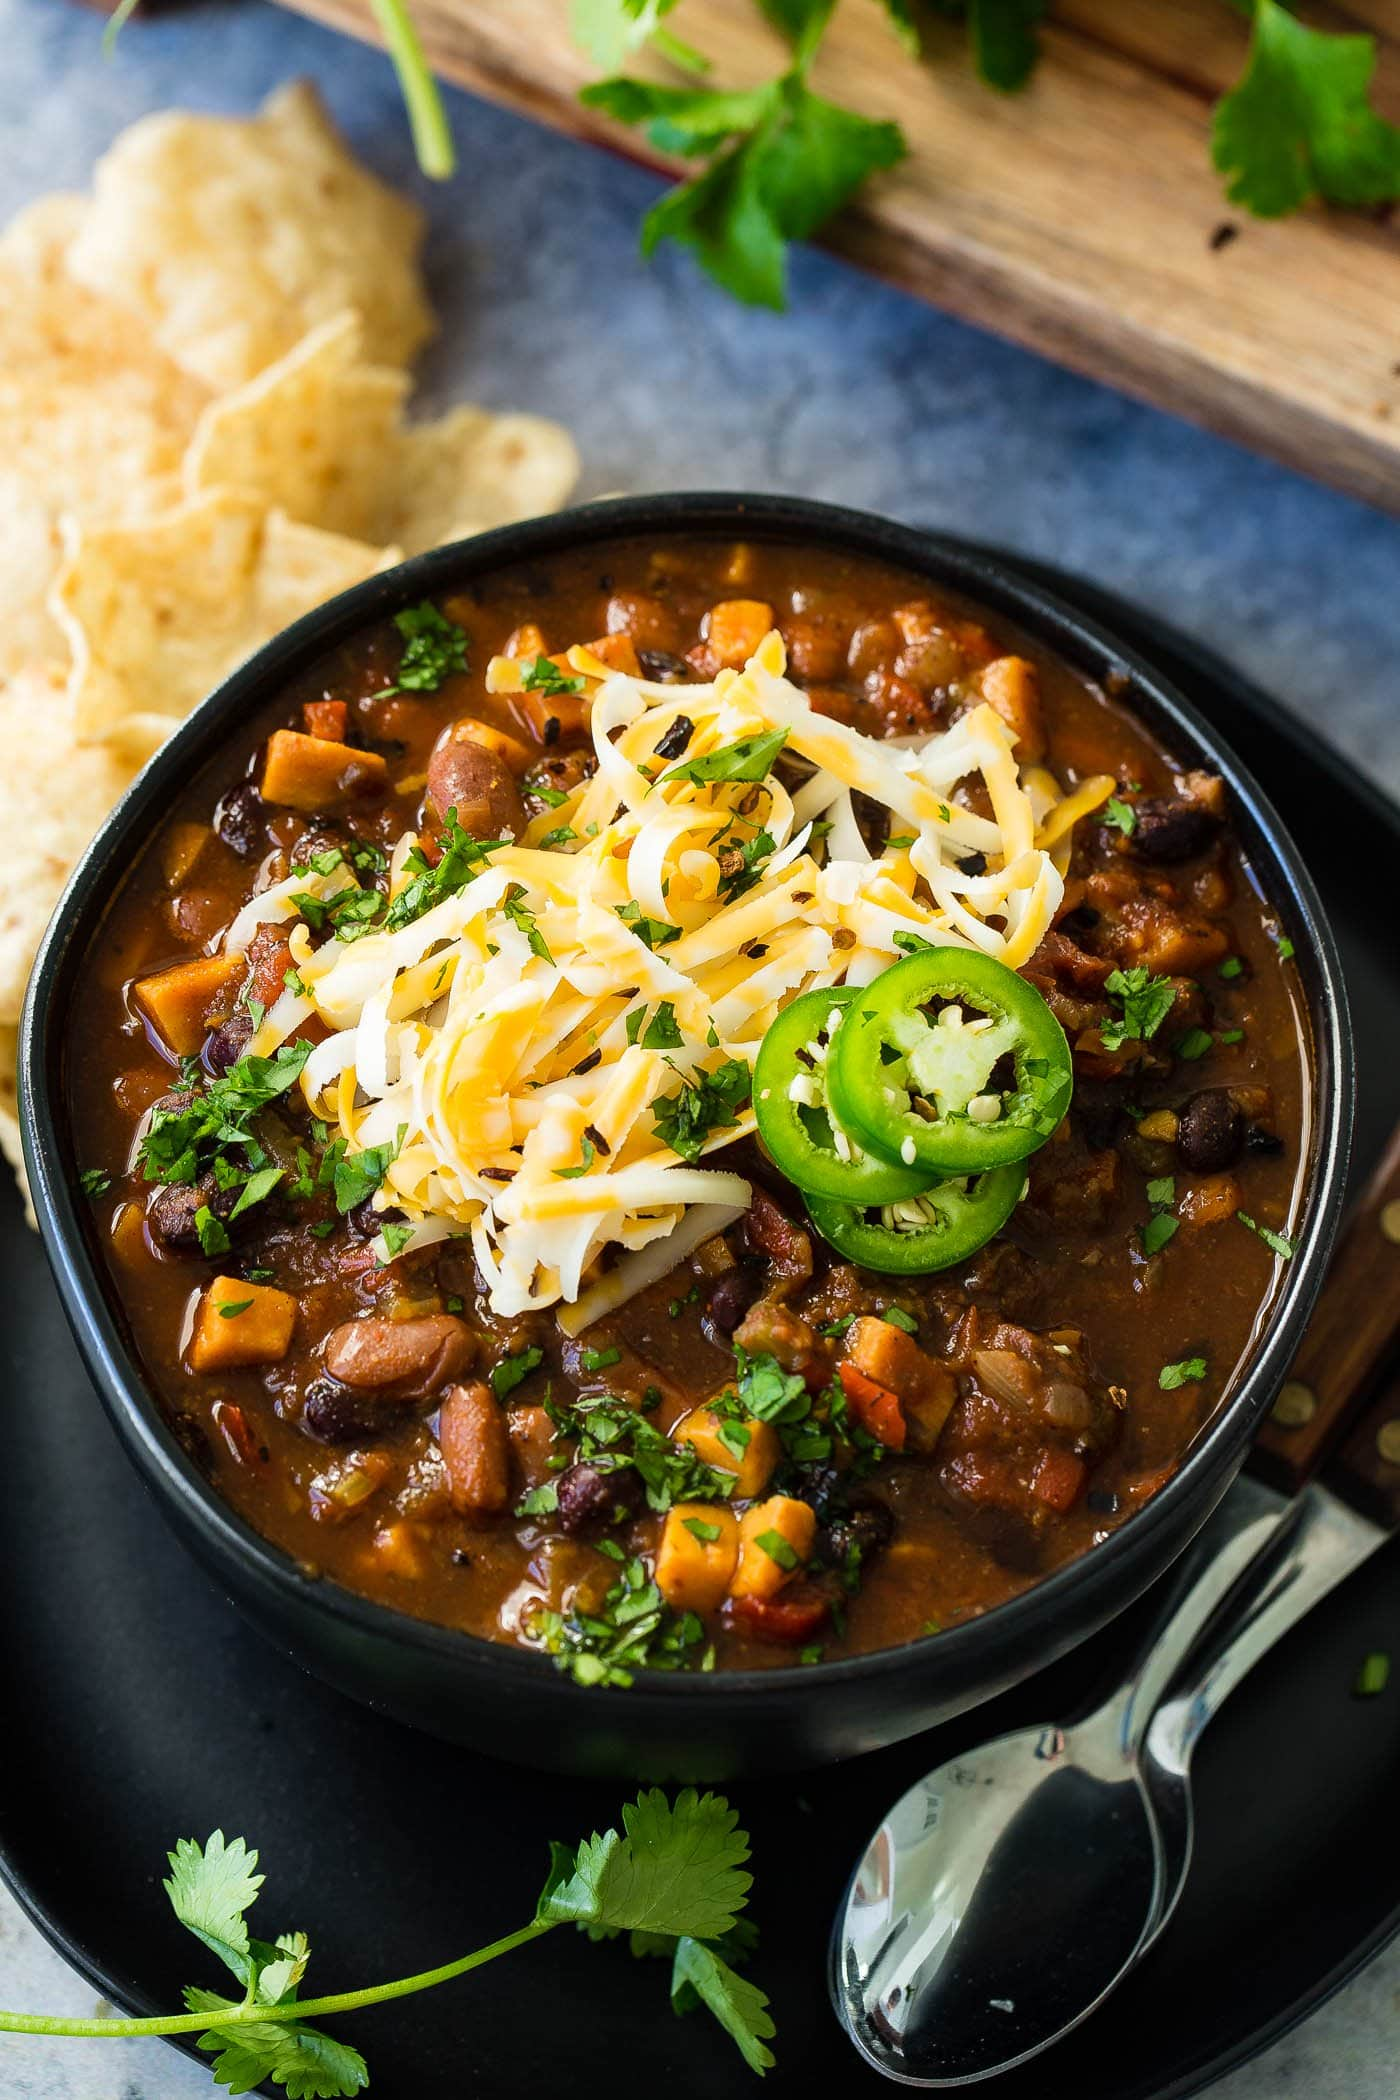 A photo of a bowl of hearty instant pot vegetarian chili topped with shredded cheese and sliced jalapeno.